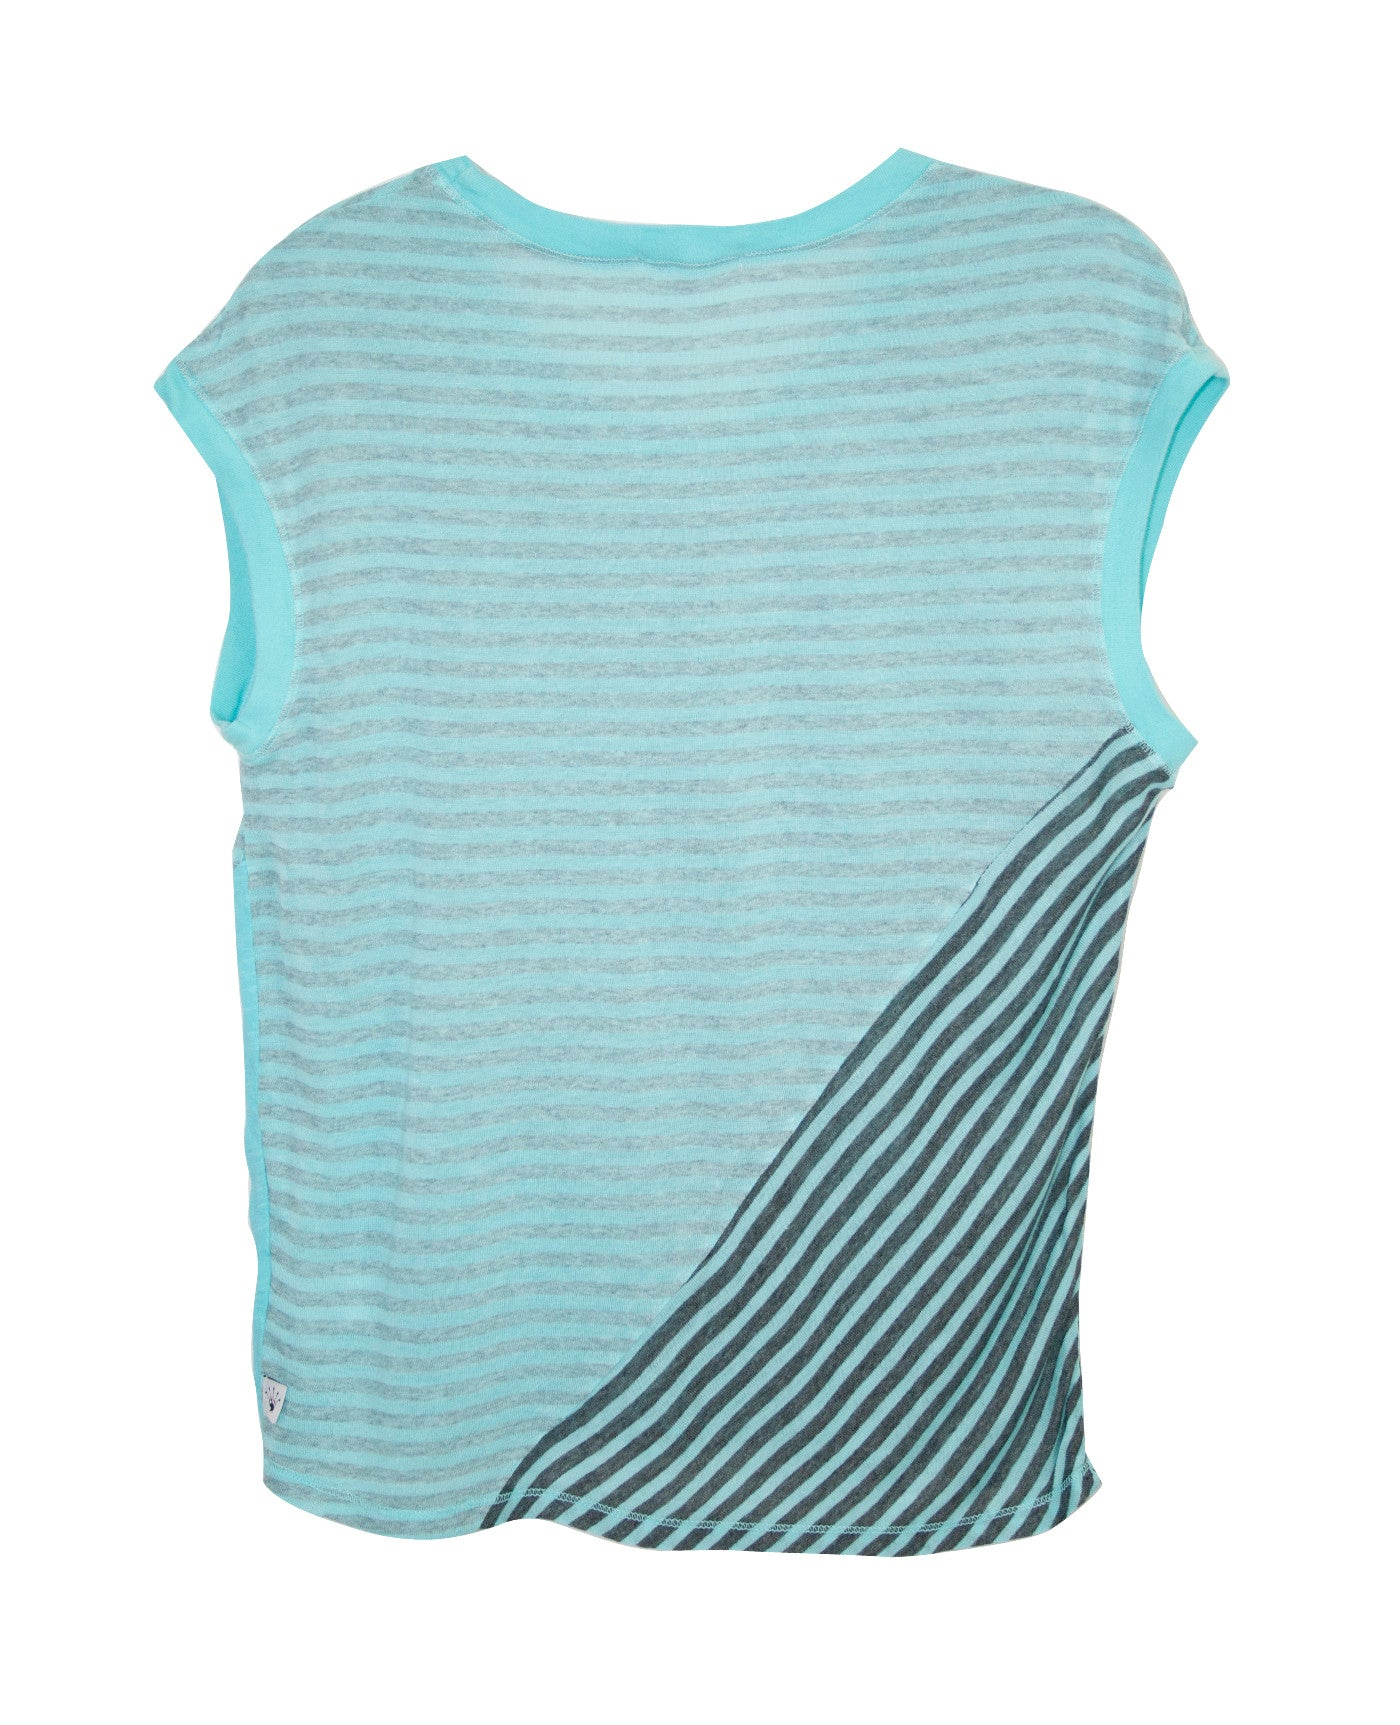 ASYMMETRICAL MIX MEDIA TWEENS TANK